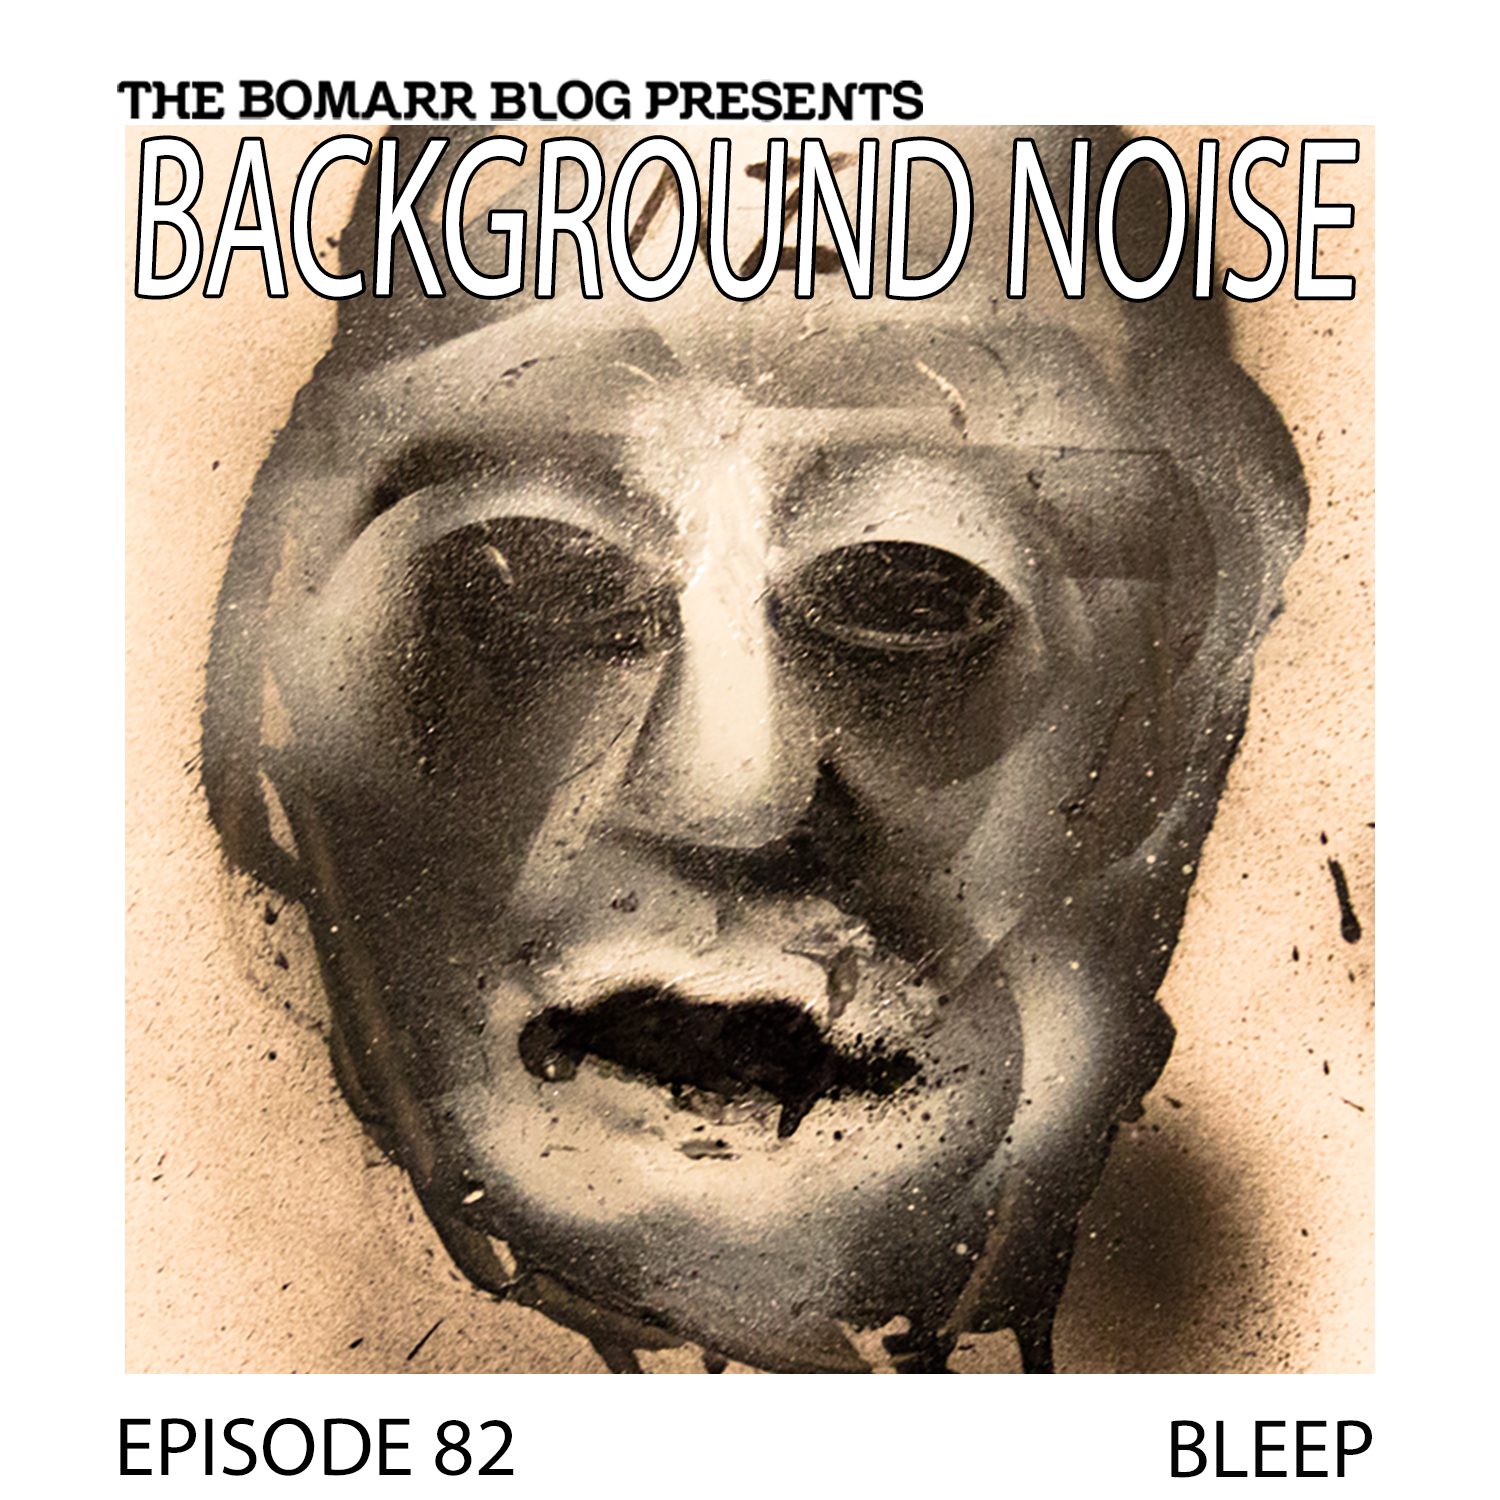 THE BACKGROUND NOISE PODCAST SERIES FOCUSES ON THE MUSIC THAT ARTISTS LISTEN TO WHEN THEY WORK, WHAT MUSIC INSPIRES THEM, OR JUST MUSIC THEY LIKE. THIS WEEK, IN EPISODE 82, THE FOCUS IS ON BLEEP